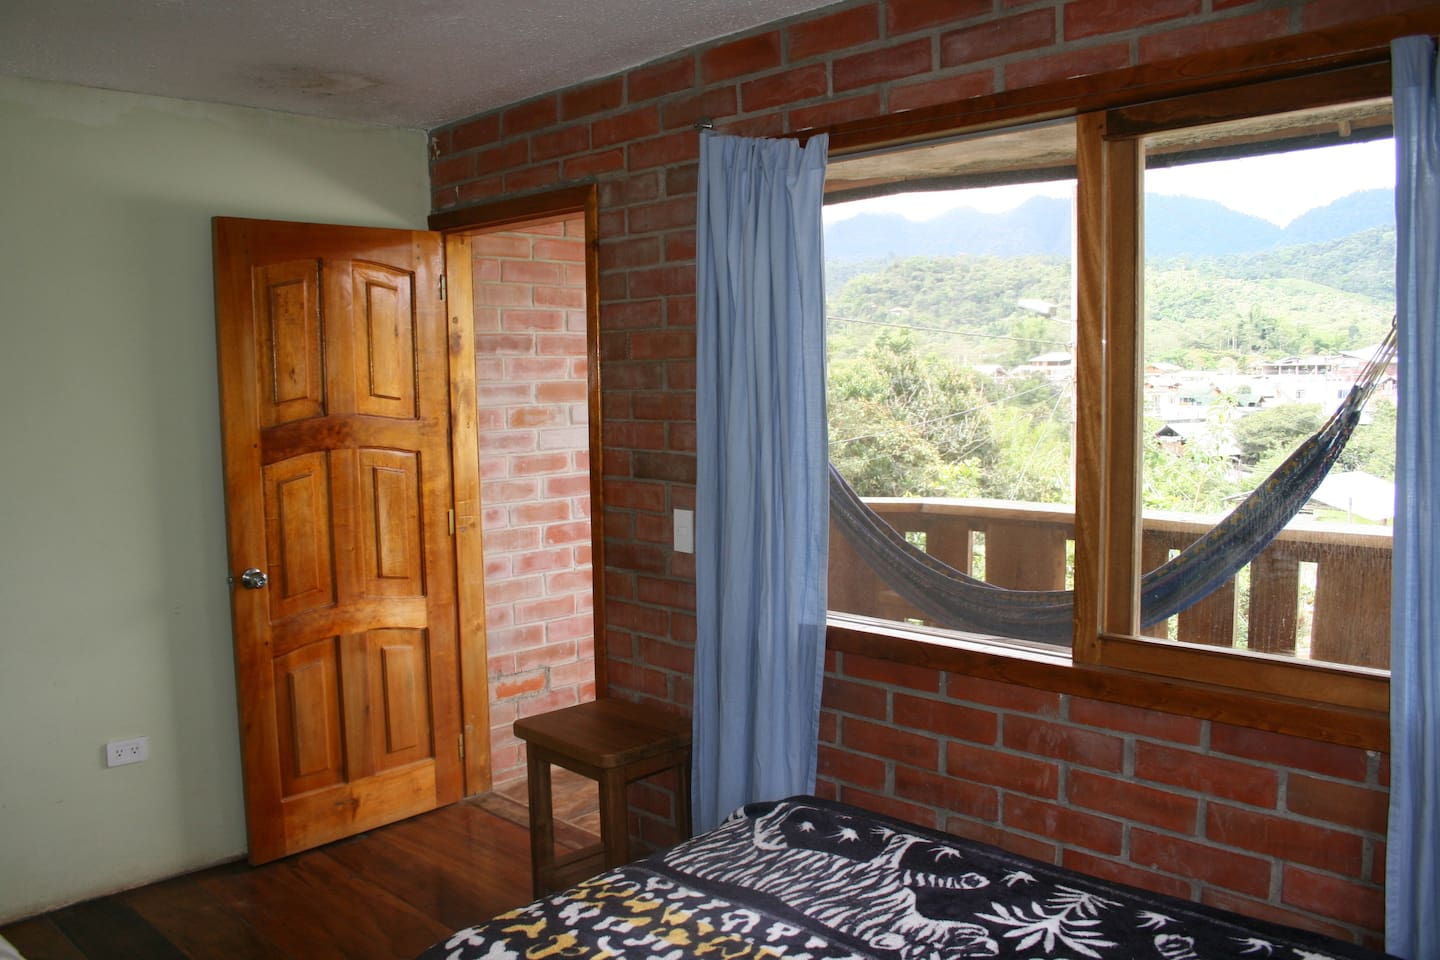 Mindo Chocolate Balcony room a great place to relax with a mountain and river view.